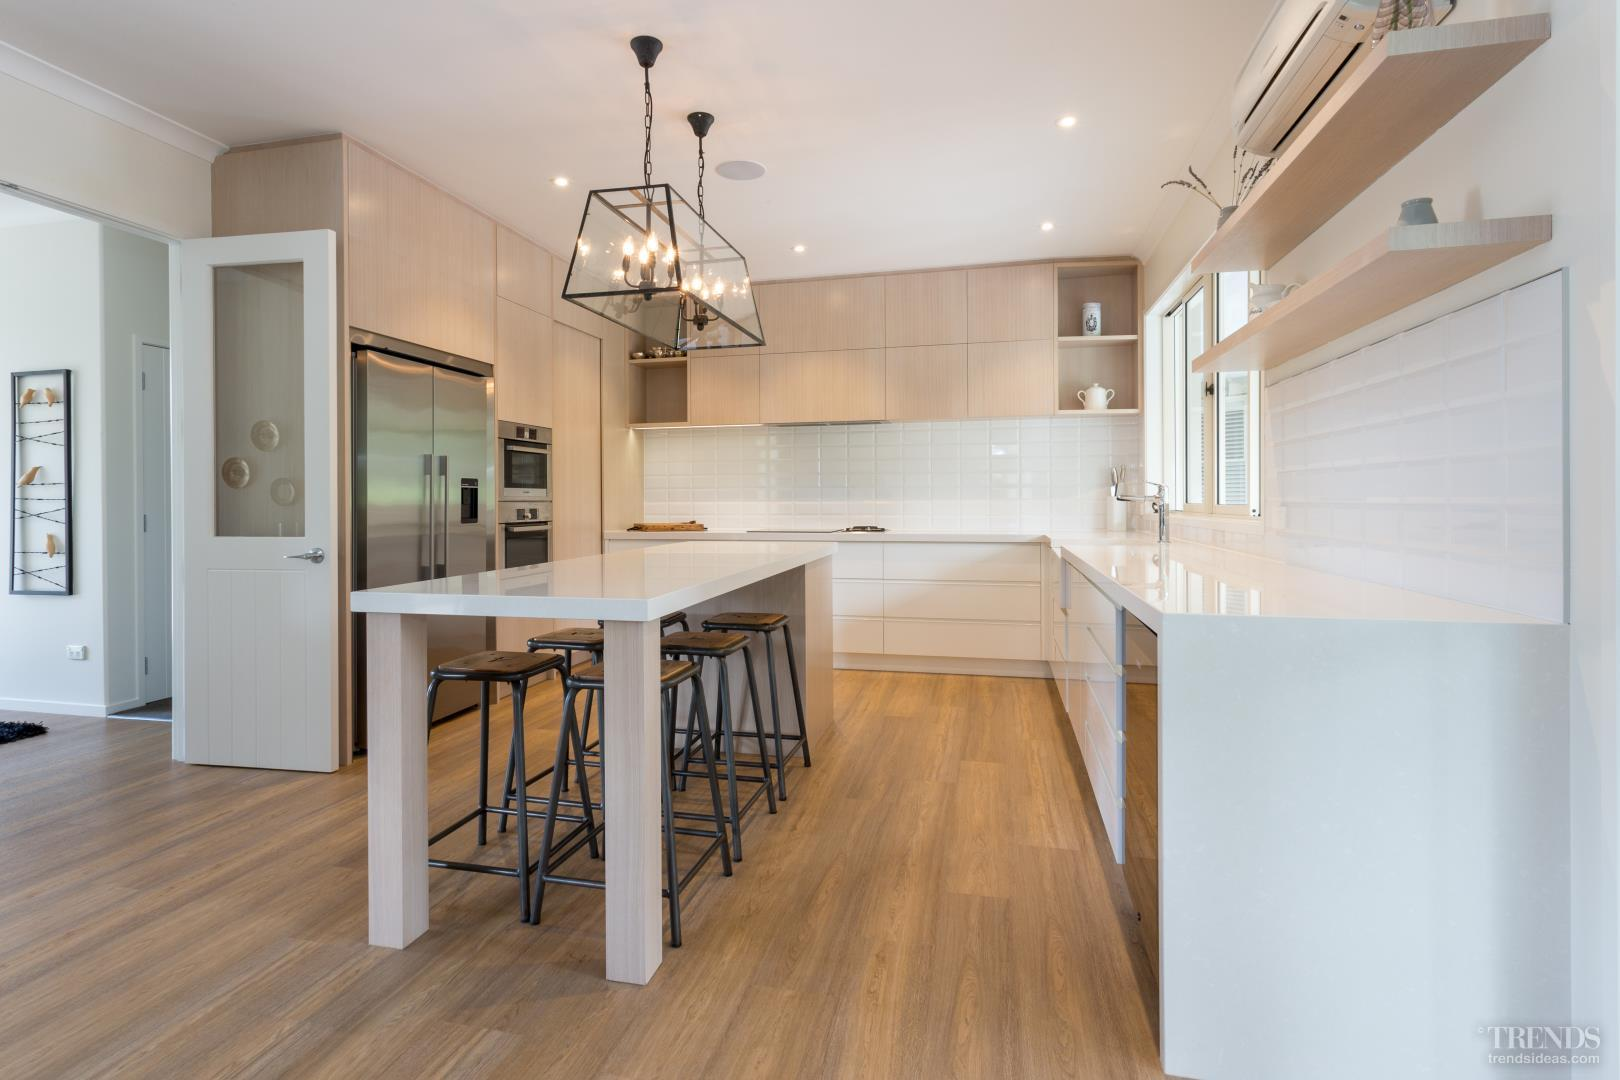 Lifestyle house with interiors by specialist Yellowfox